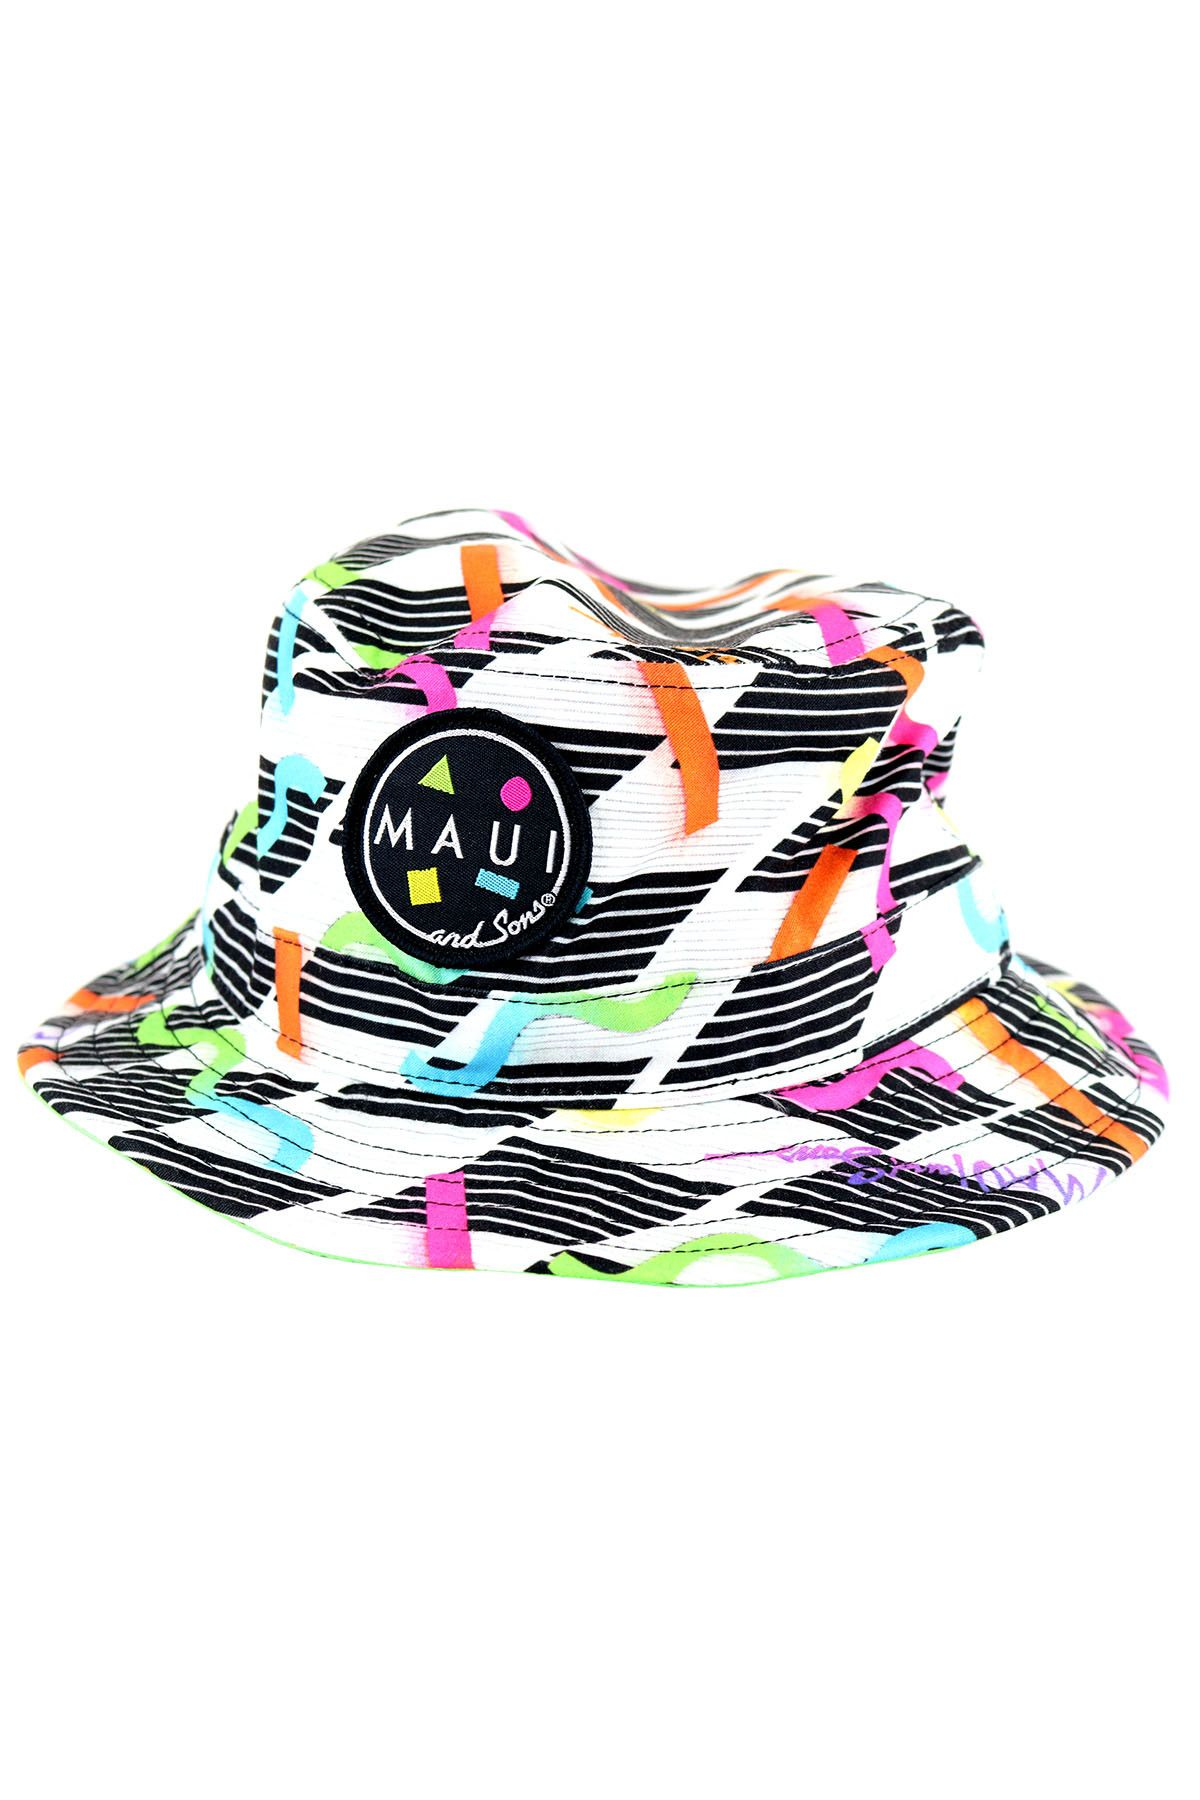 b4f289a7c12 Payback Bucket Hat Bucket Hat - Maui and Sons